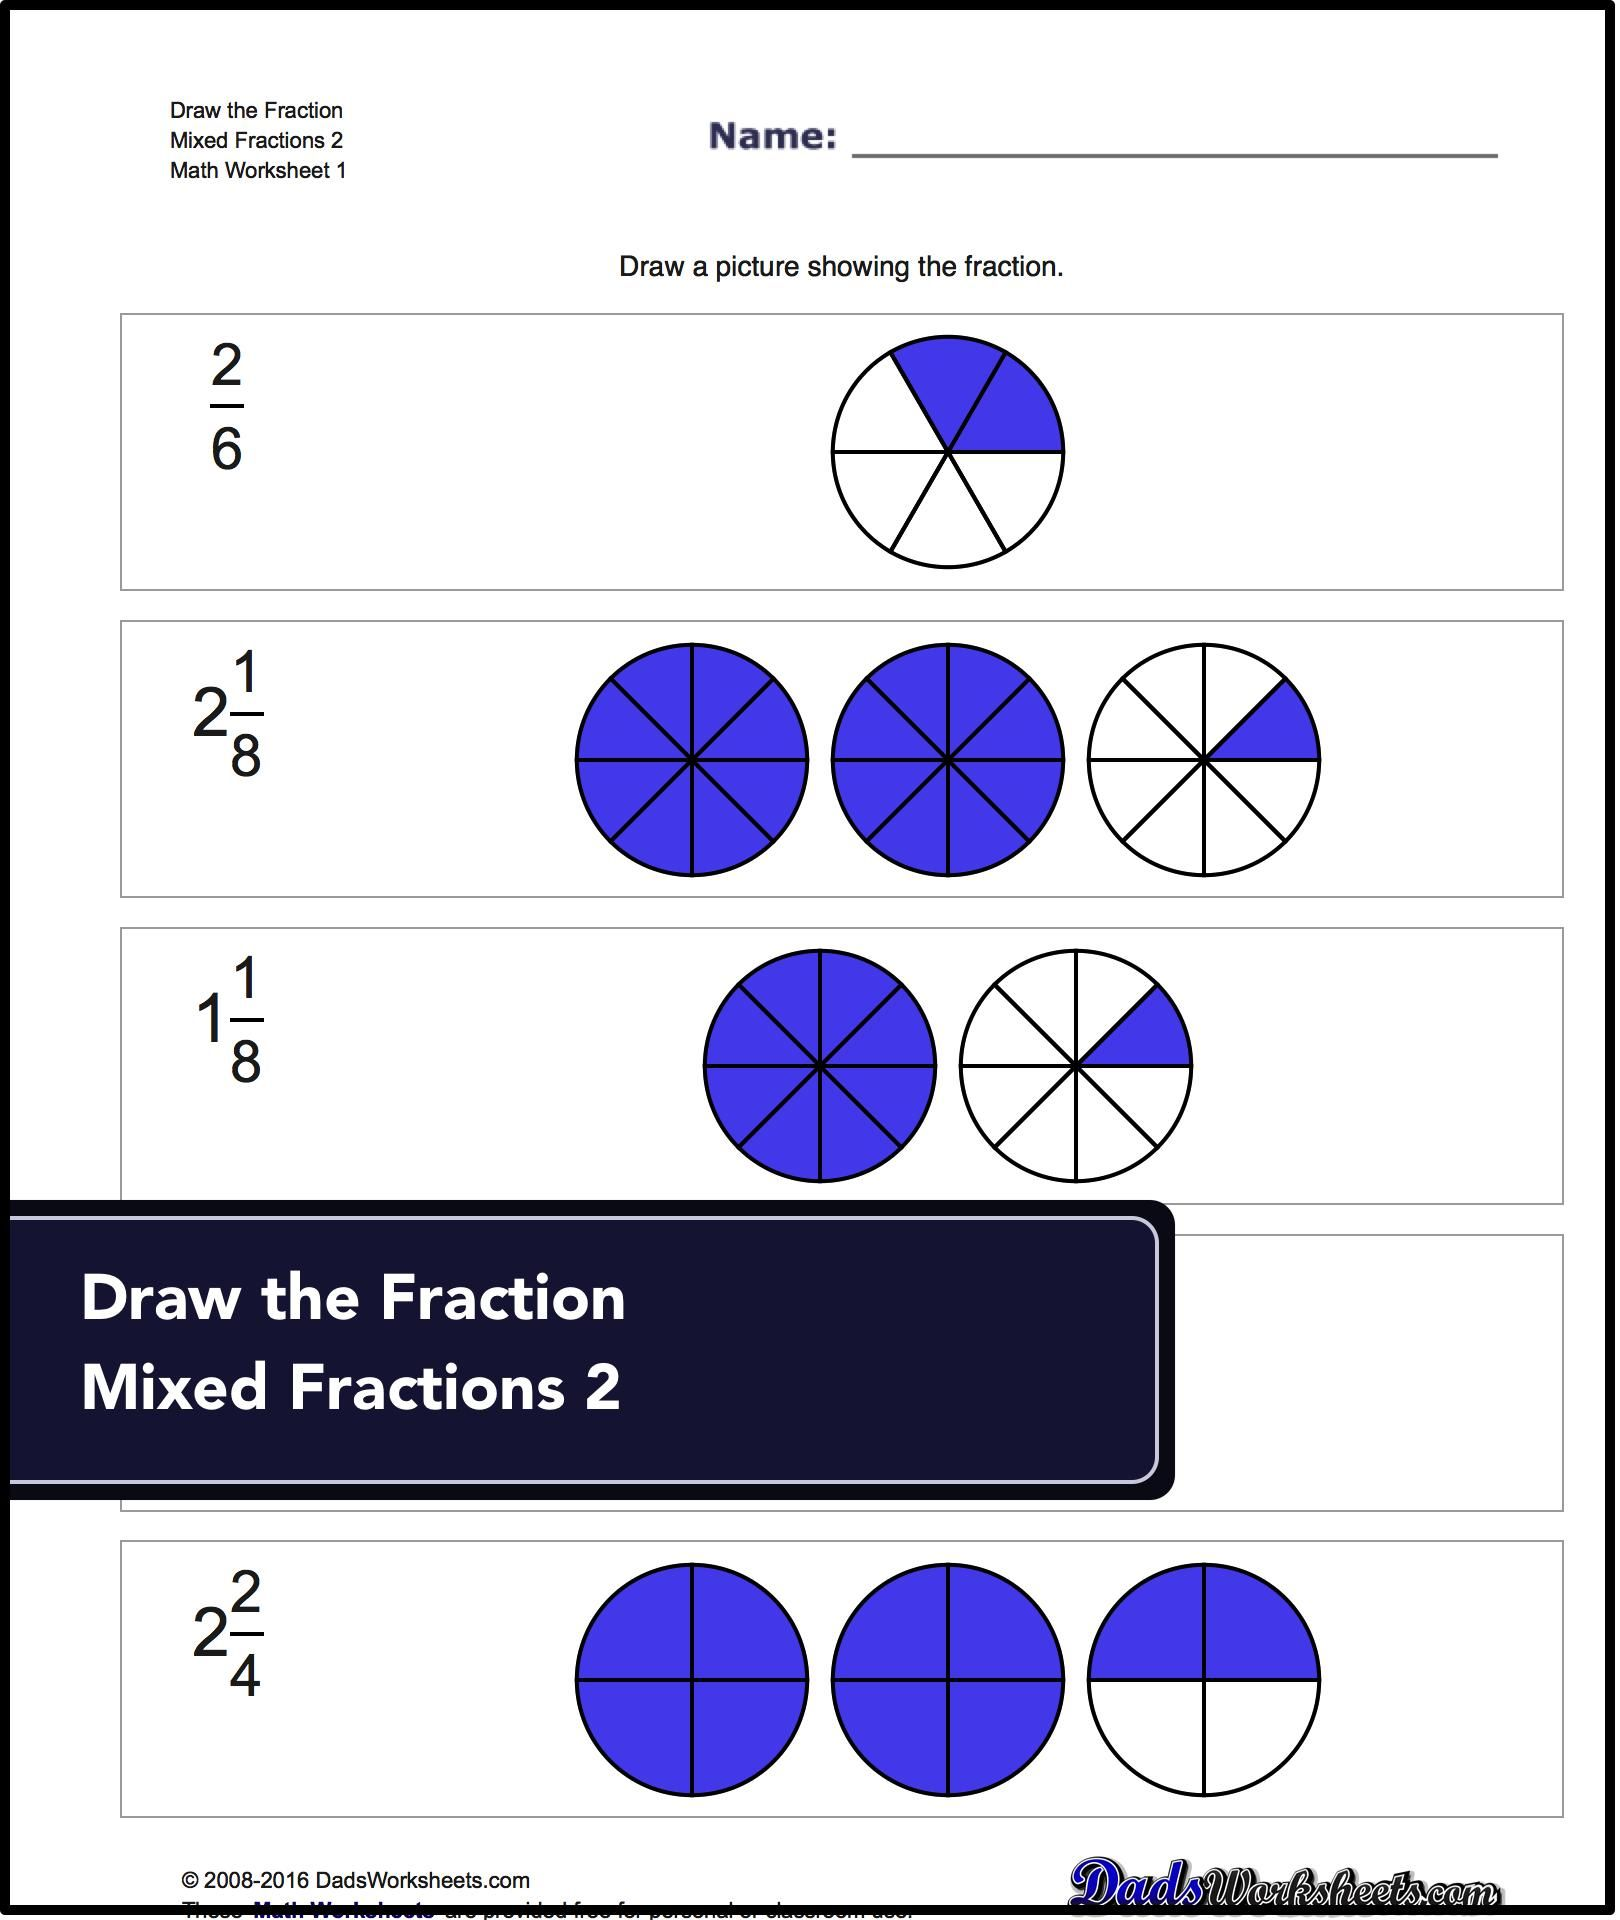 Graphic Fractions Worksheets that require students to draw simple